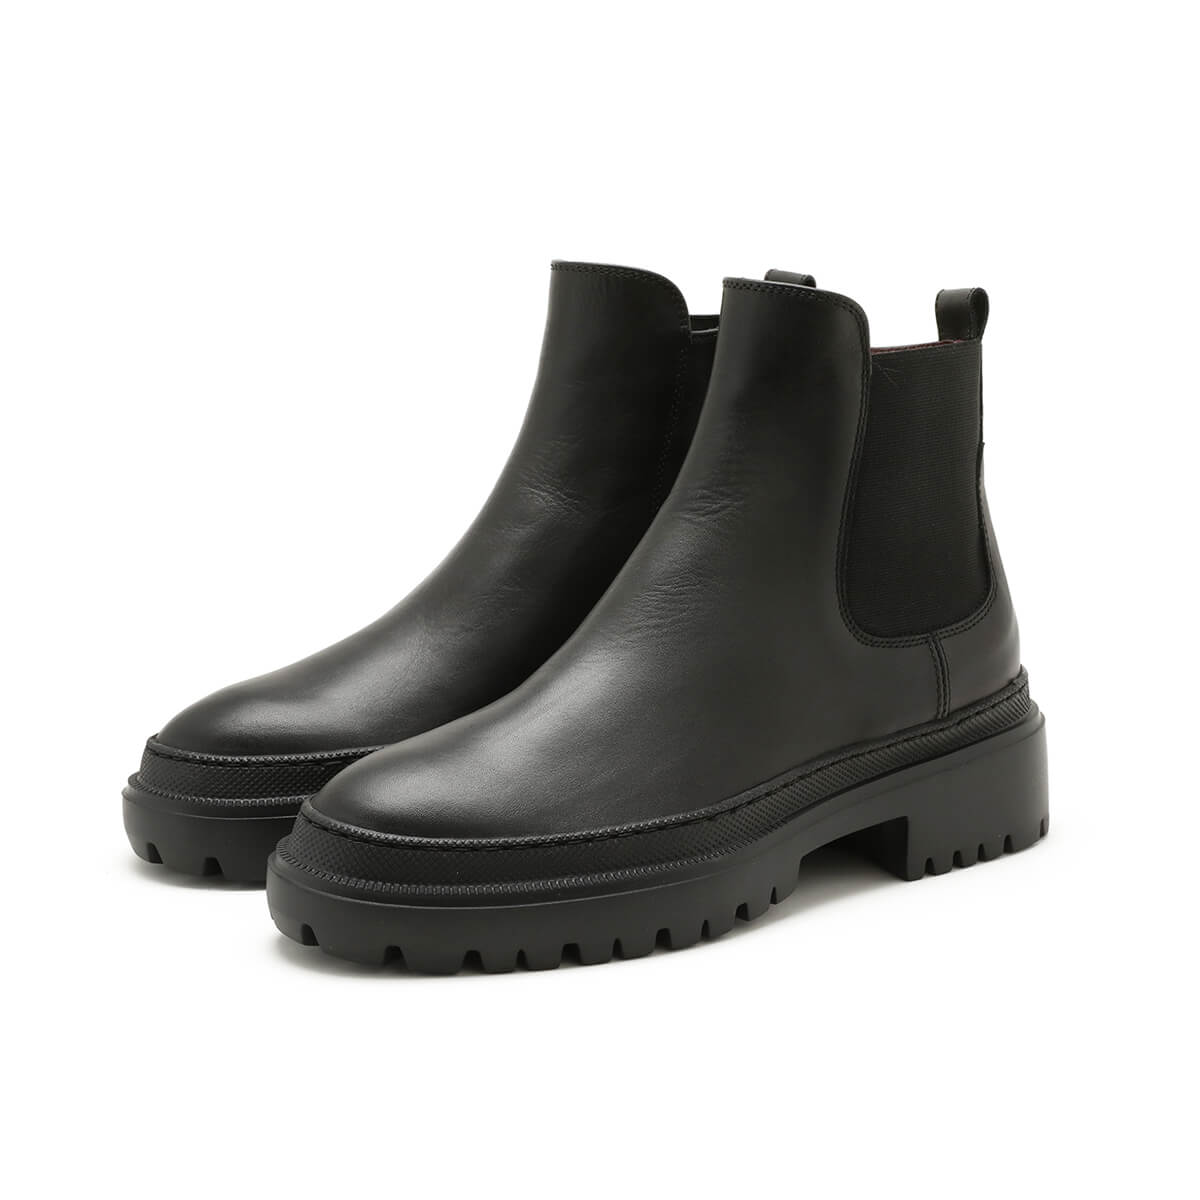 Chunky Beatles Boots, black leather